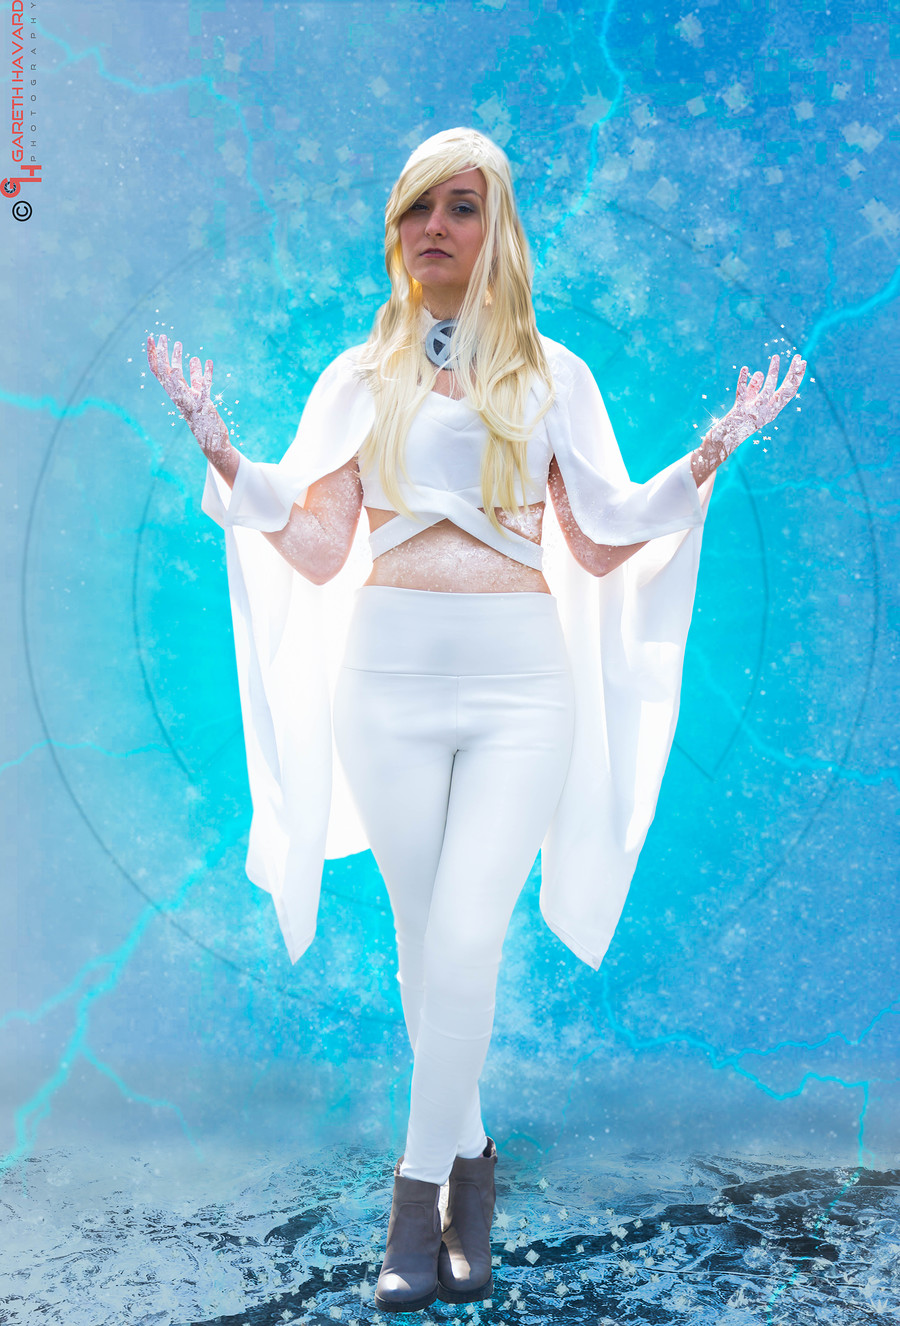 Emma Frost - Cosplay / Photography by Gareth Havard Photography, Post processing by Unmadesugar Photography / Uploaded 14th July 2016 @ 06:47 PM